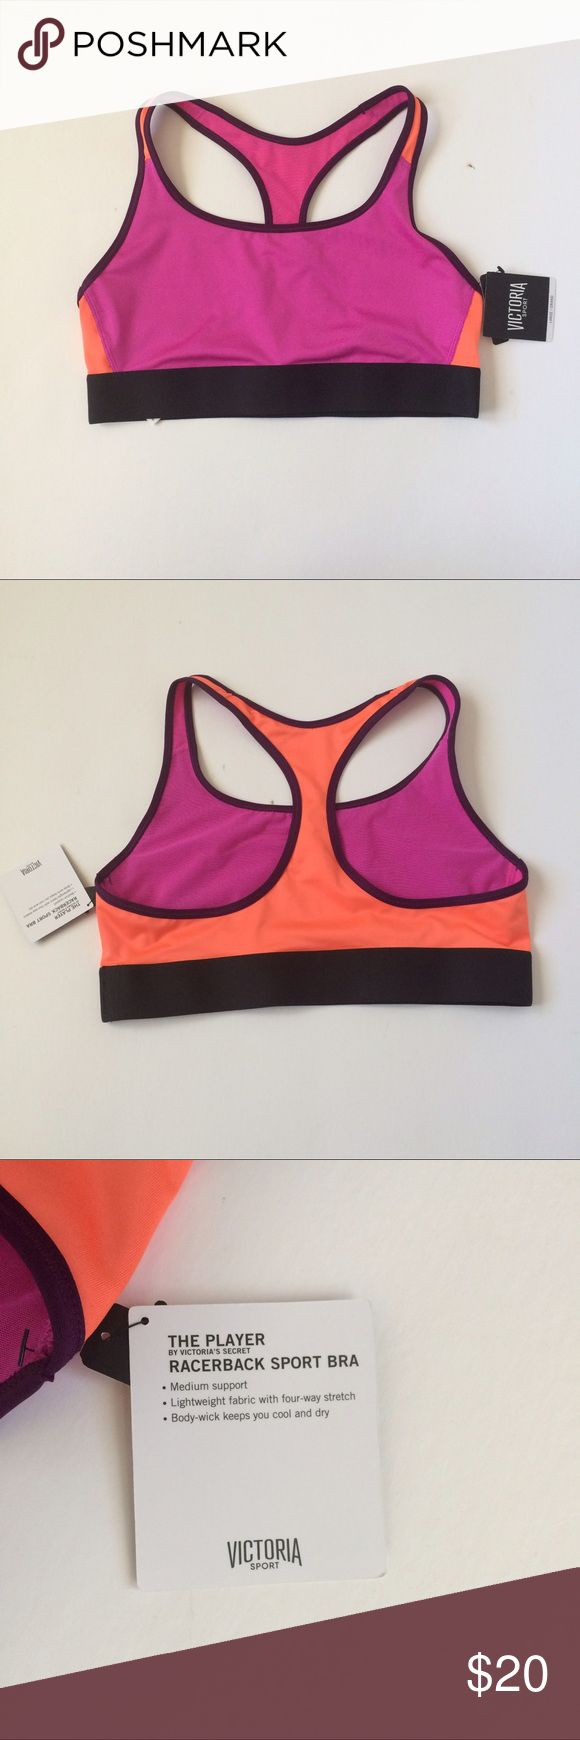 🆕(S) VS Pink/Orange Sports Bra NWT Victoria's Secret The Player Racerback Sports Bra size small in dragonfruit. This sports bra is playful and colorful, with a mix of pink and orange giving you a summer glow ☀️ Provides medium support with breathable fabric, ready for the gym or for going for a run! Victoria's Secret Intimates & Sleepwear Bras